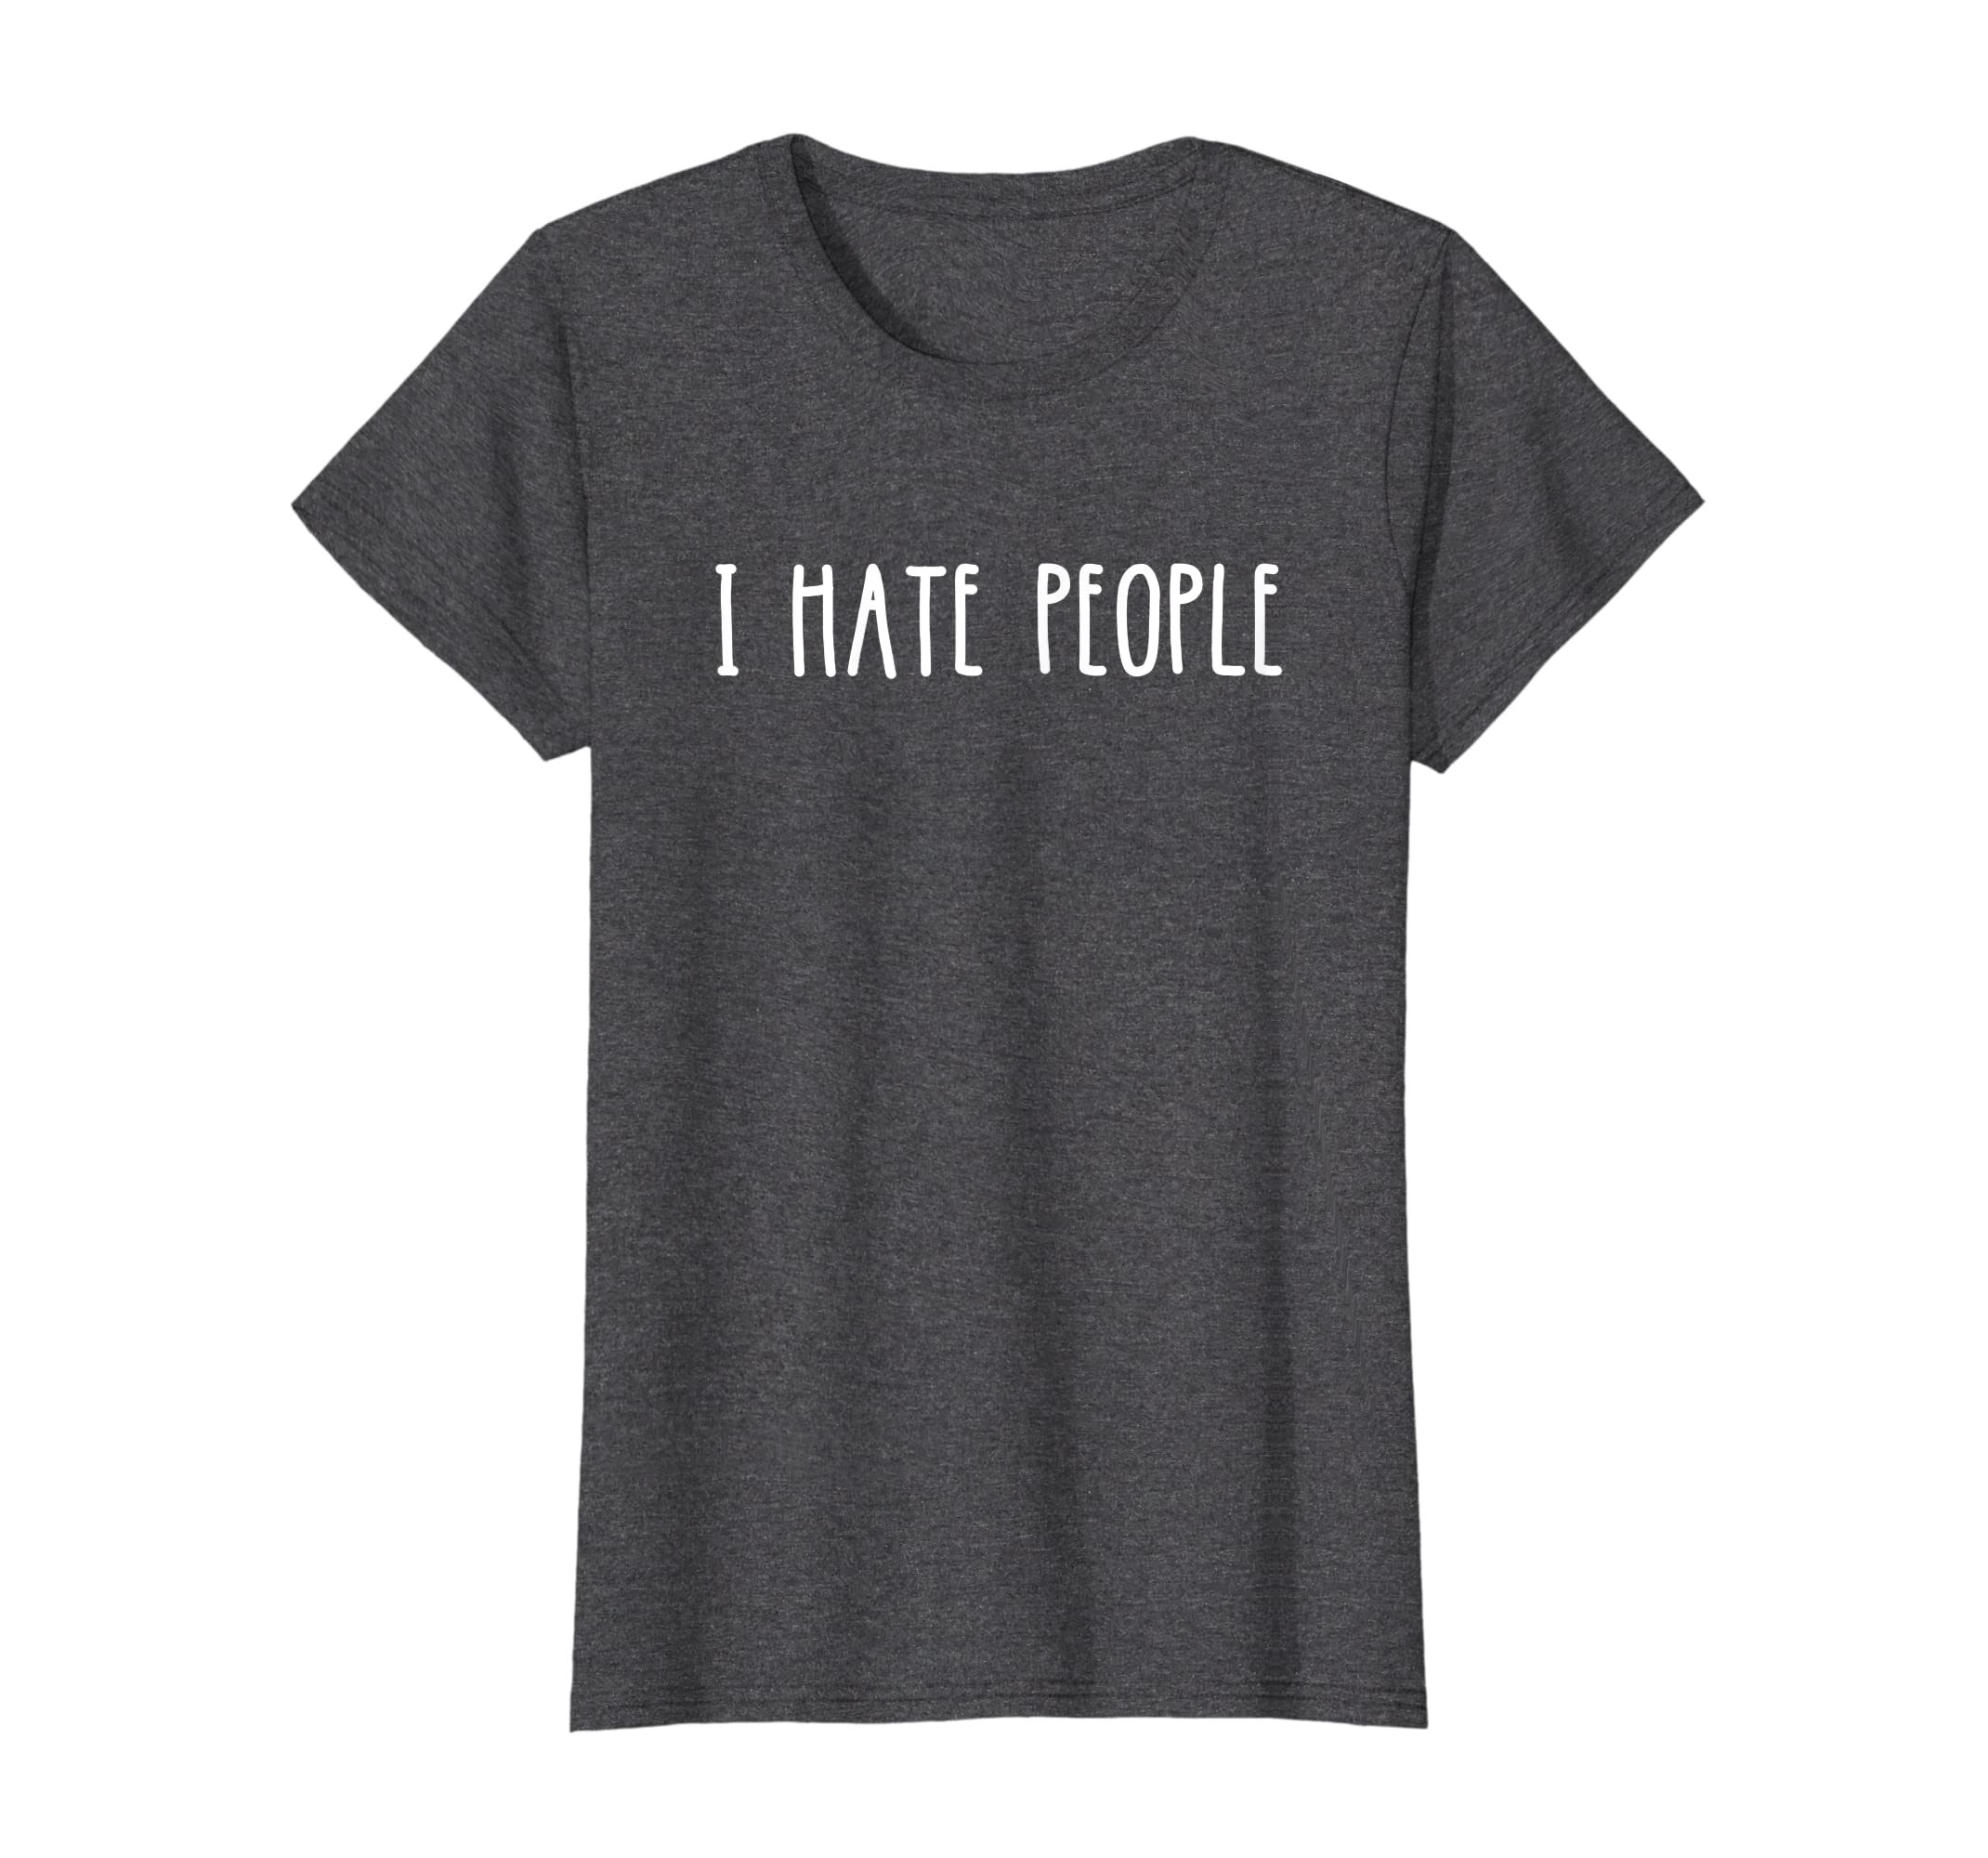 dedc7204f Amazon.com: I Hate People Shirt: Clothing